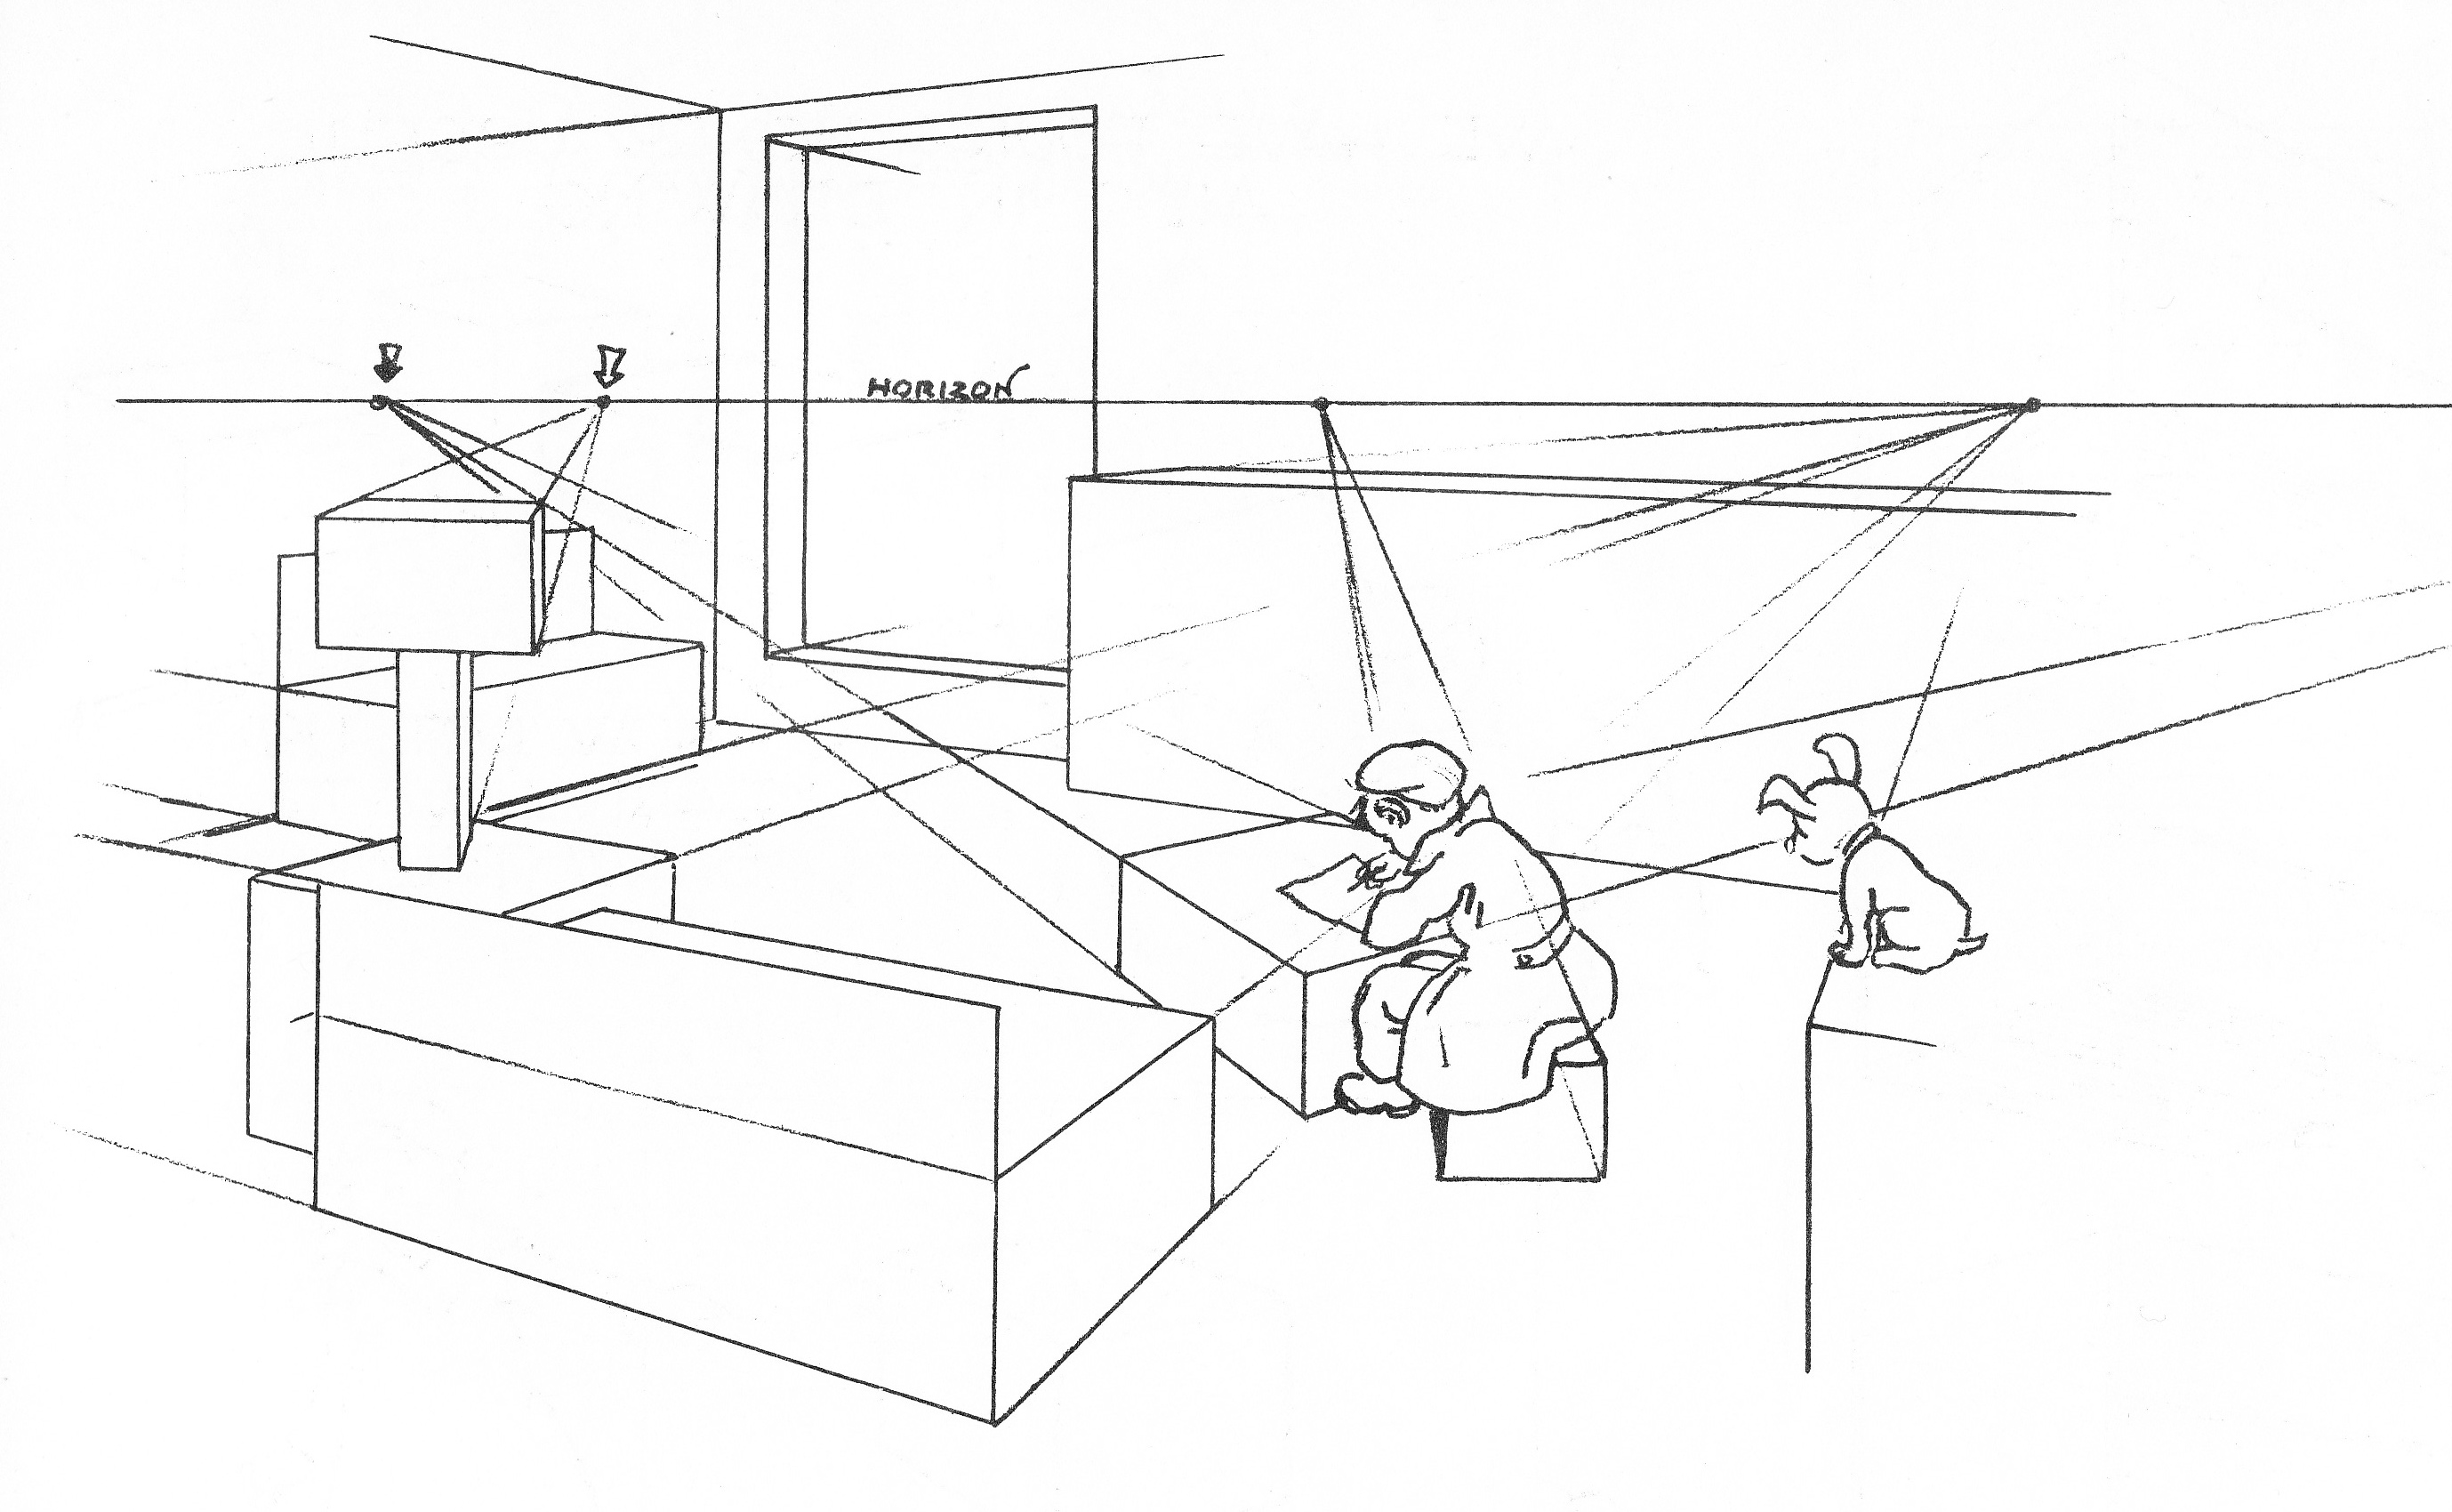 Norling's Illustrations Of How To Draw A Corner Of A Living Room And  Objects On Various Eye Levels: